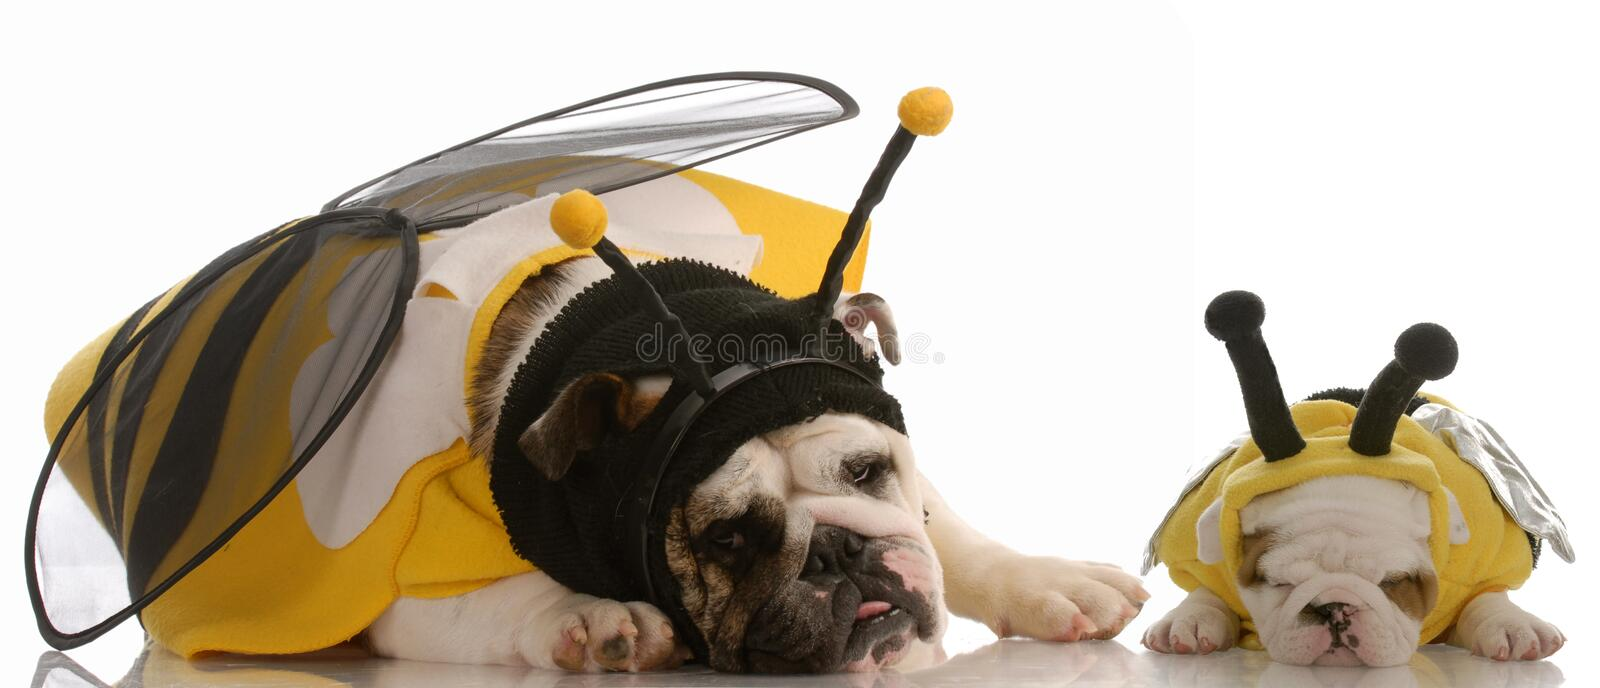 Two dogs dressed up as bees royalty free stock photos